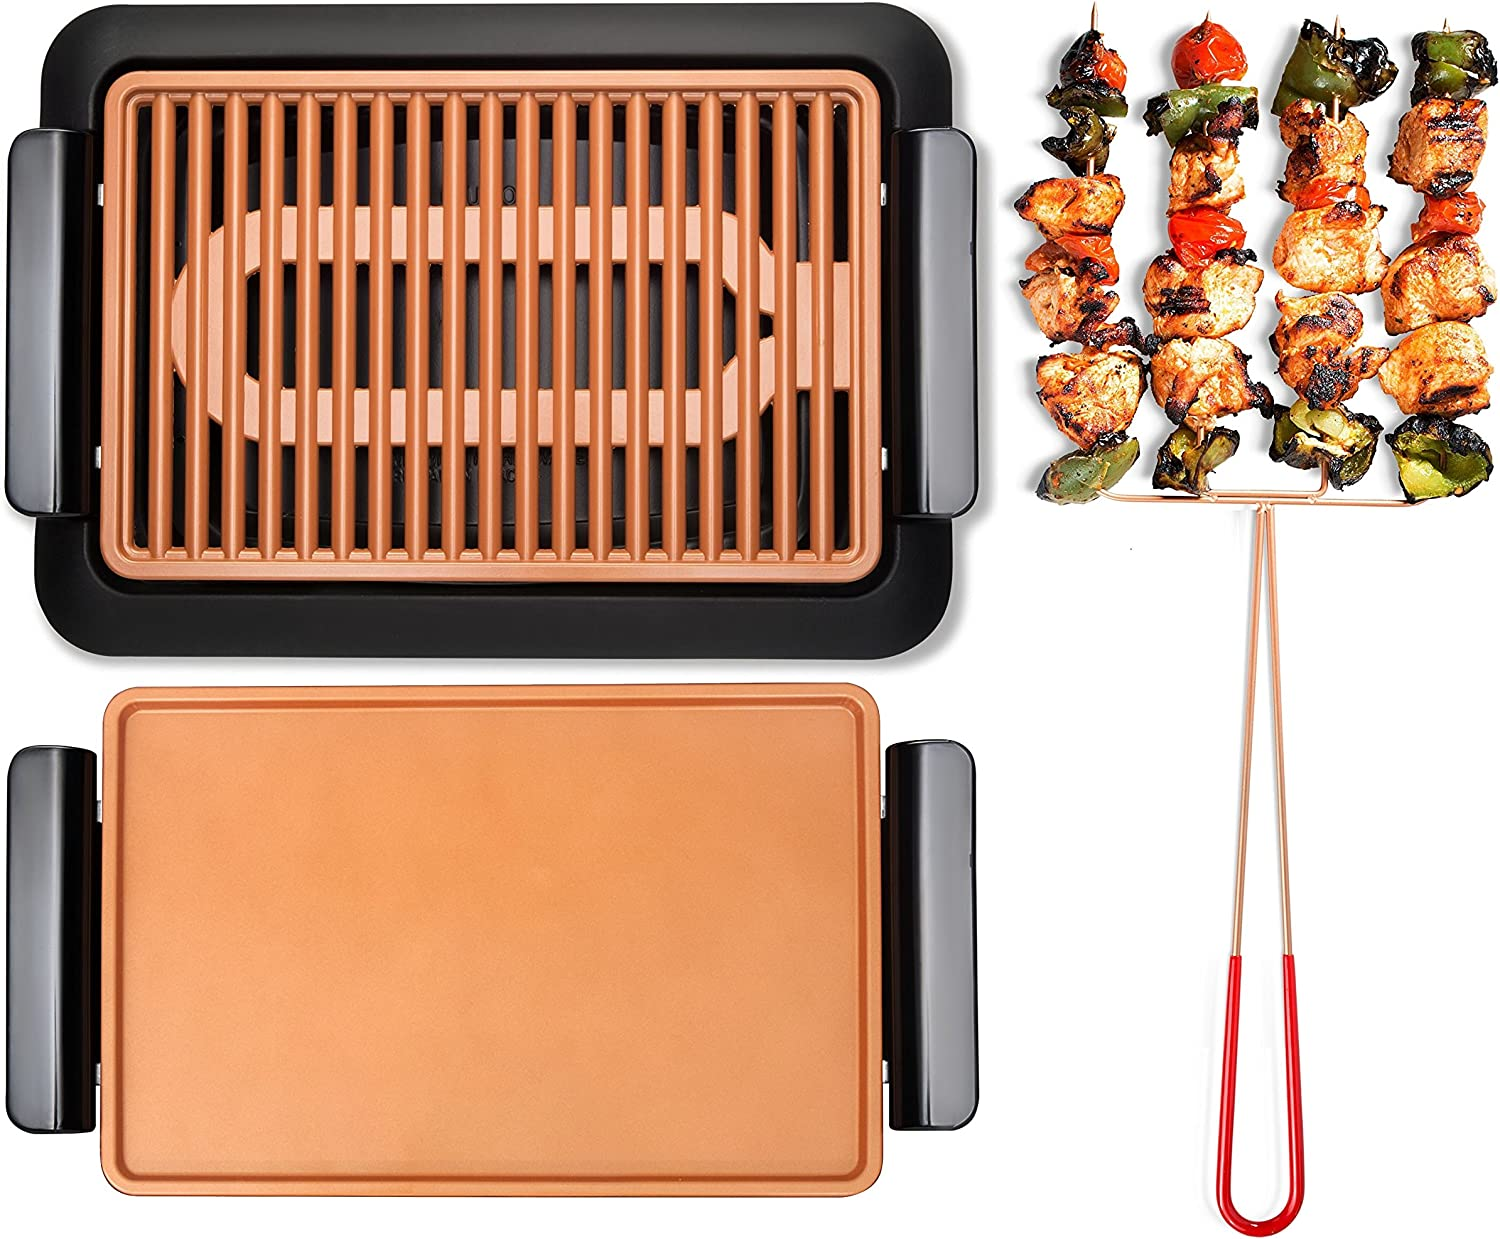 GOTHAM STEEL Smokeless Electric Grill review